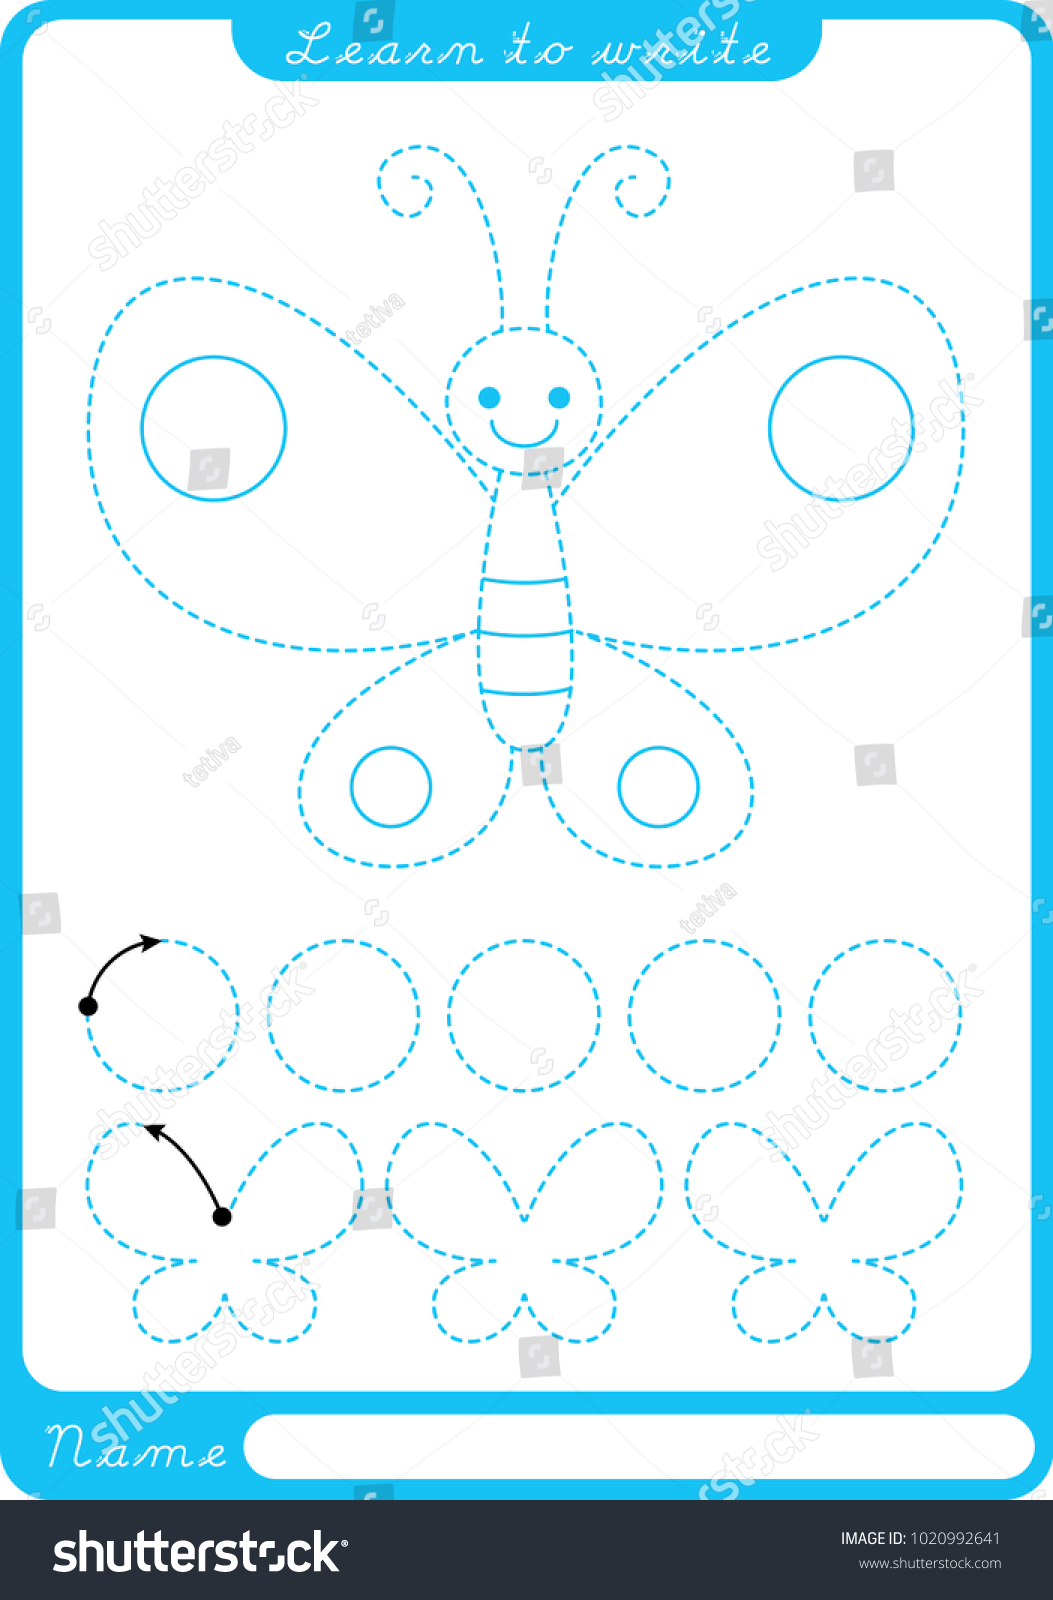 Erfly Tracing Preschool Worksheets Erfly Best Free Printable Worksheets